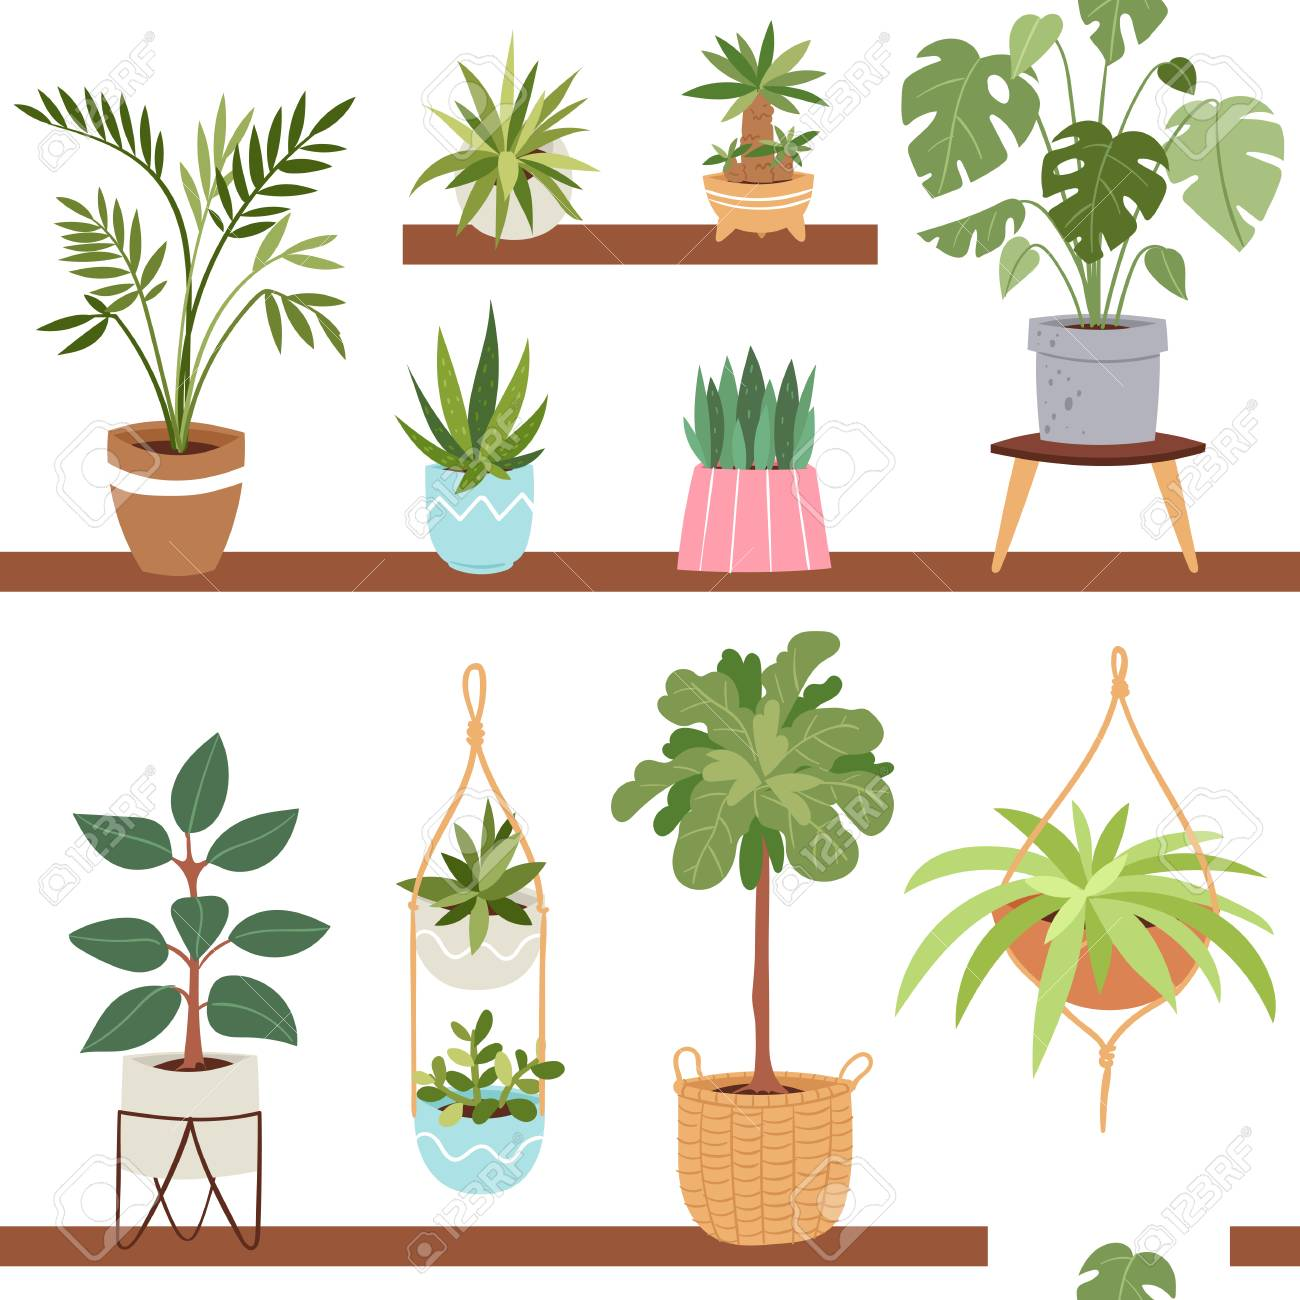 House Indoor Vector Plants And Nature Homemade Flowers In Pot Interior  Decoration Houseplant Natural Tree Flowerpot